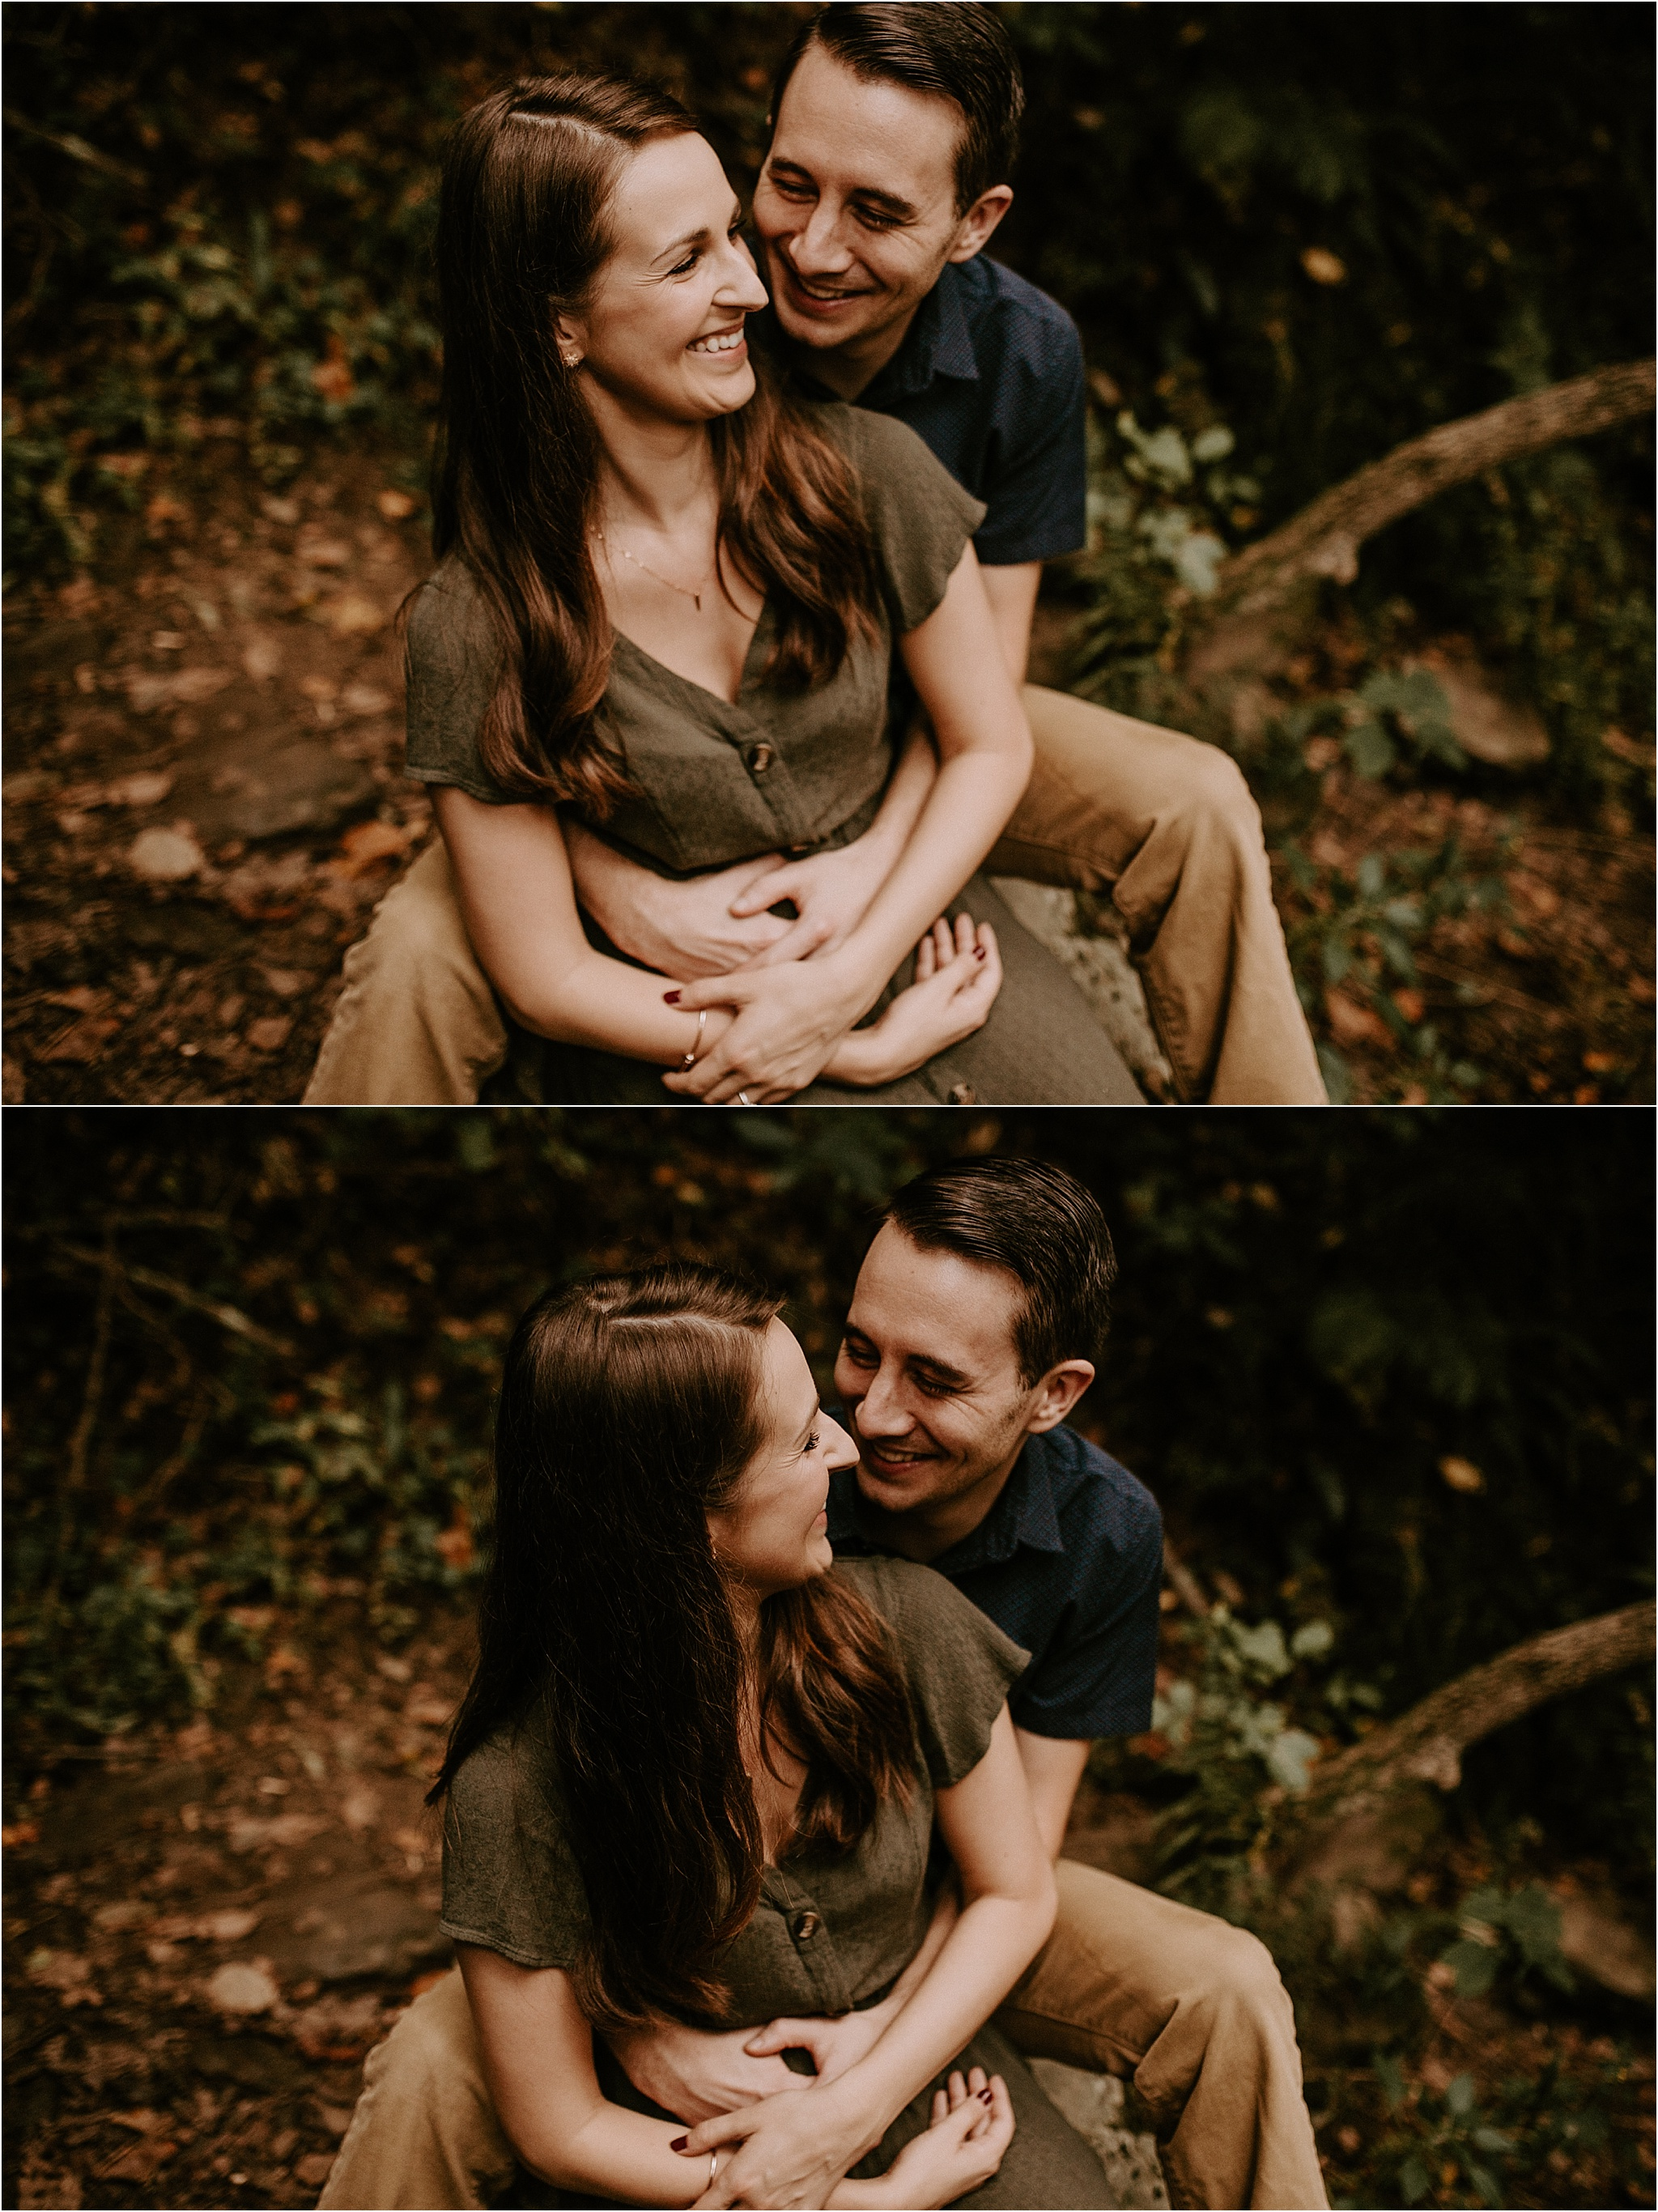 Sarah_Brookhart_Lancaster_PA_Engagement_Photographer_0010.jpg